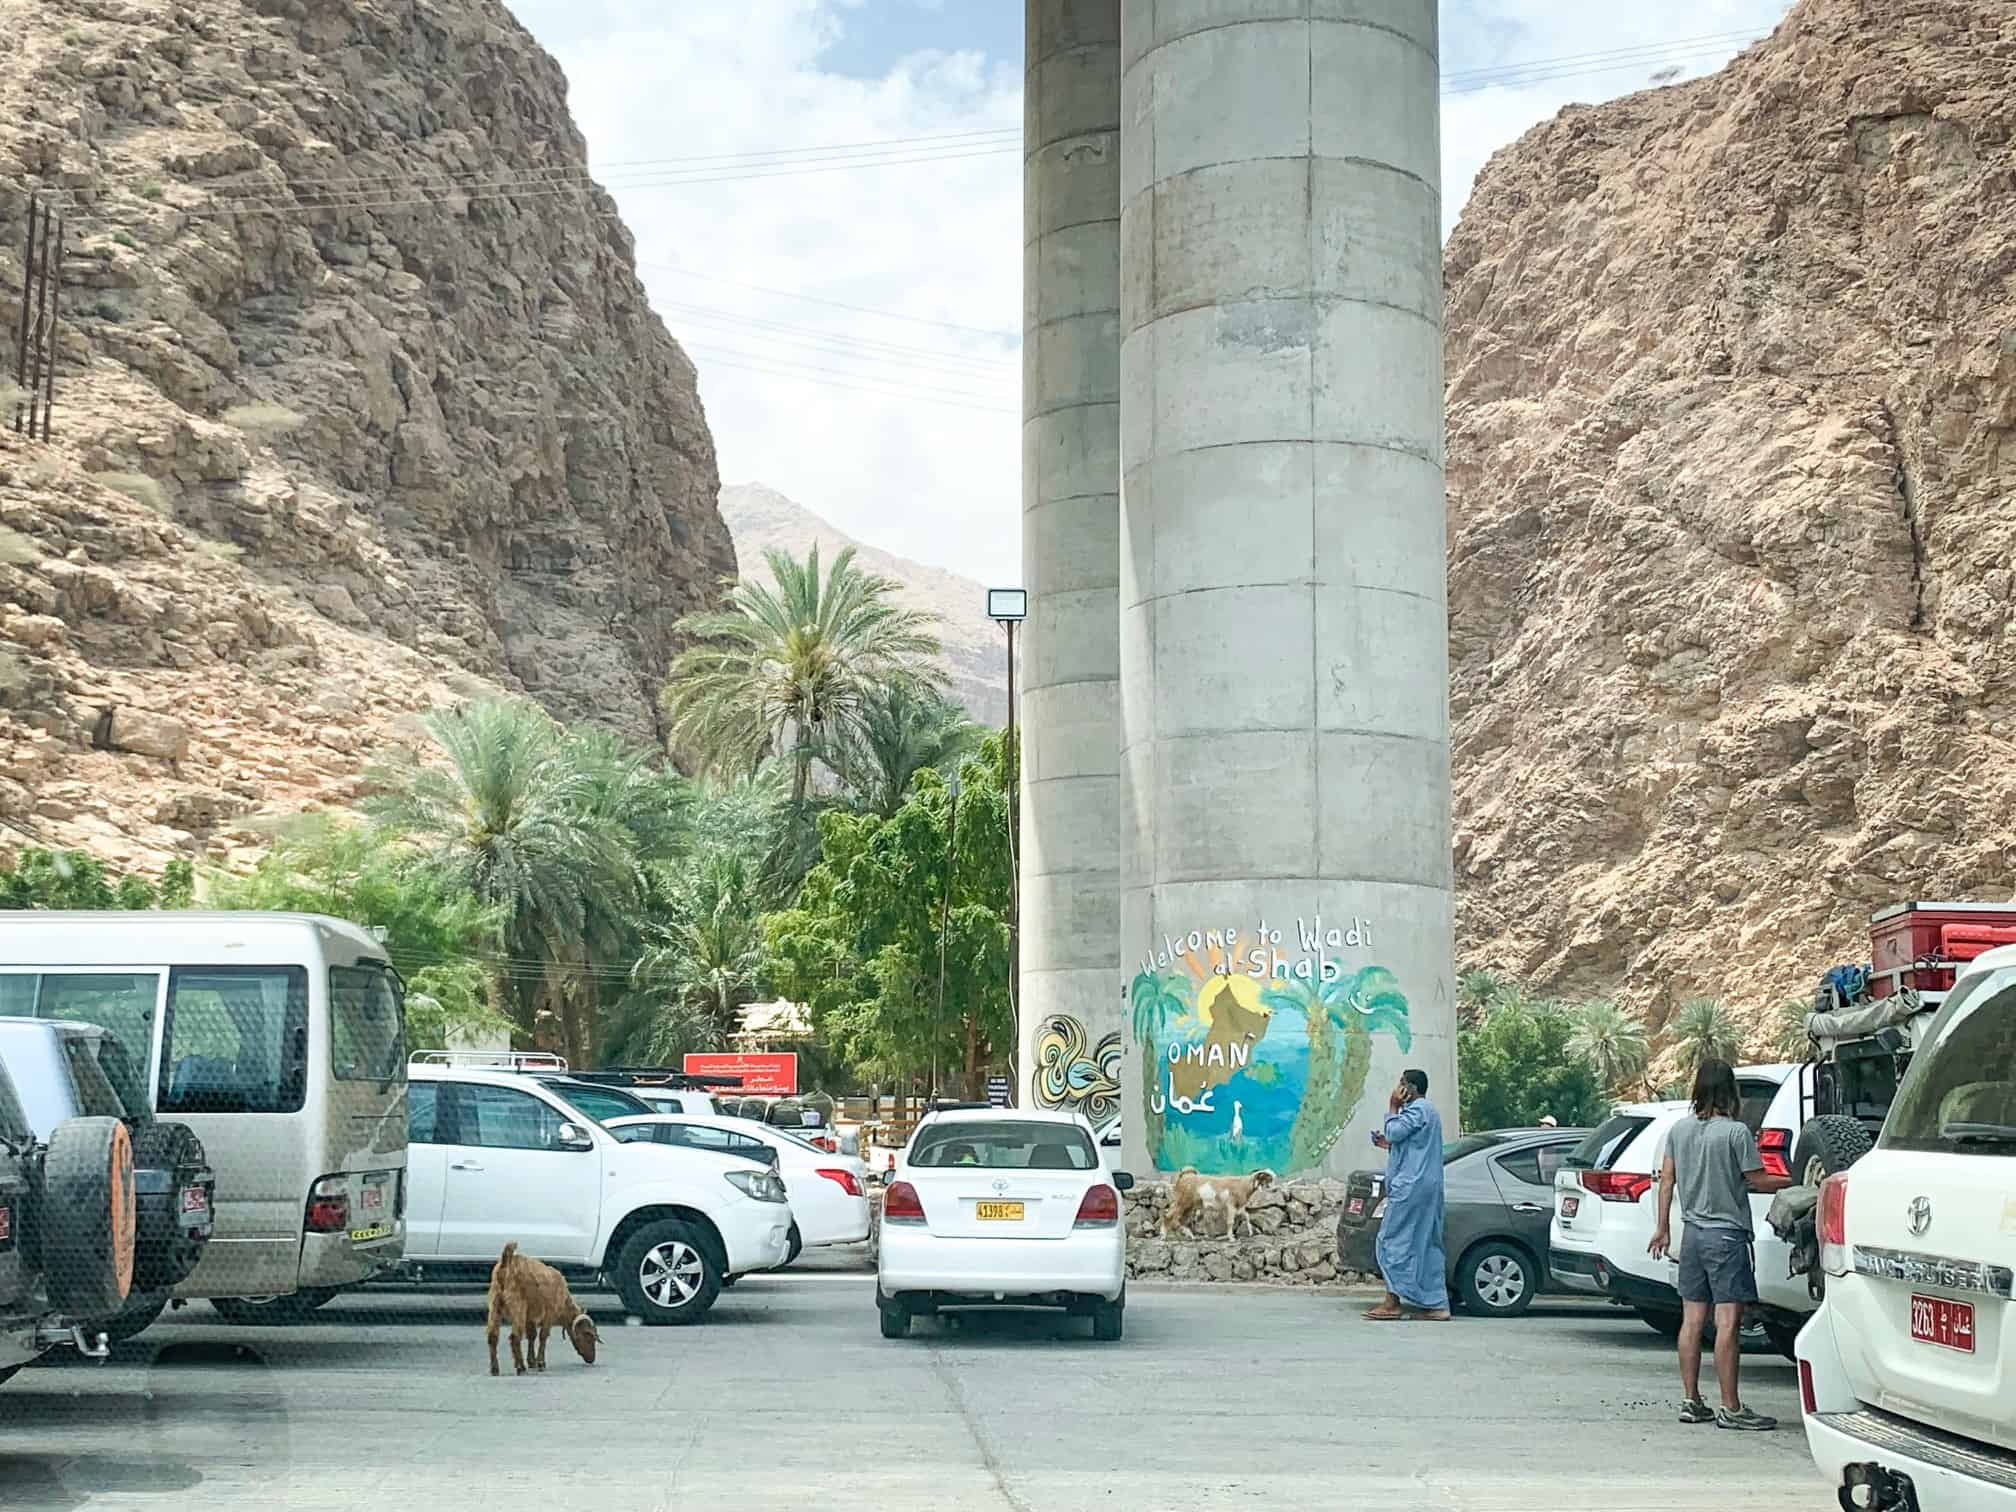 There are goats at the Wadi Shab parking lot